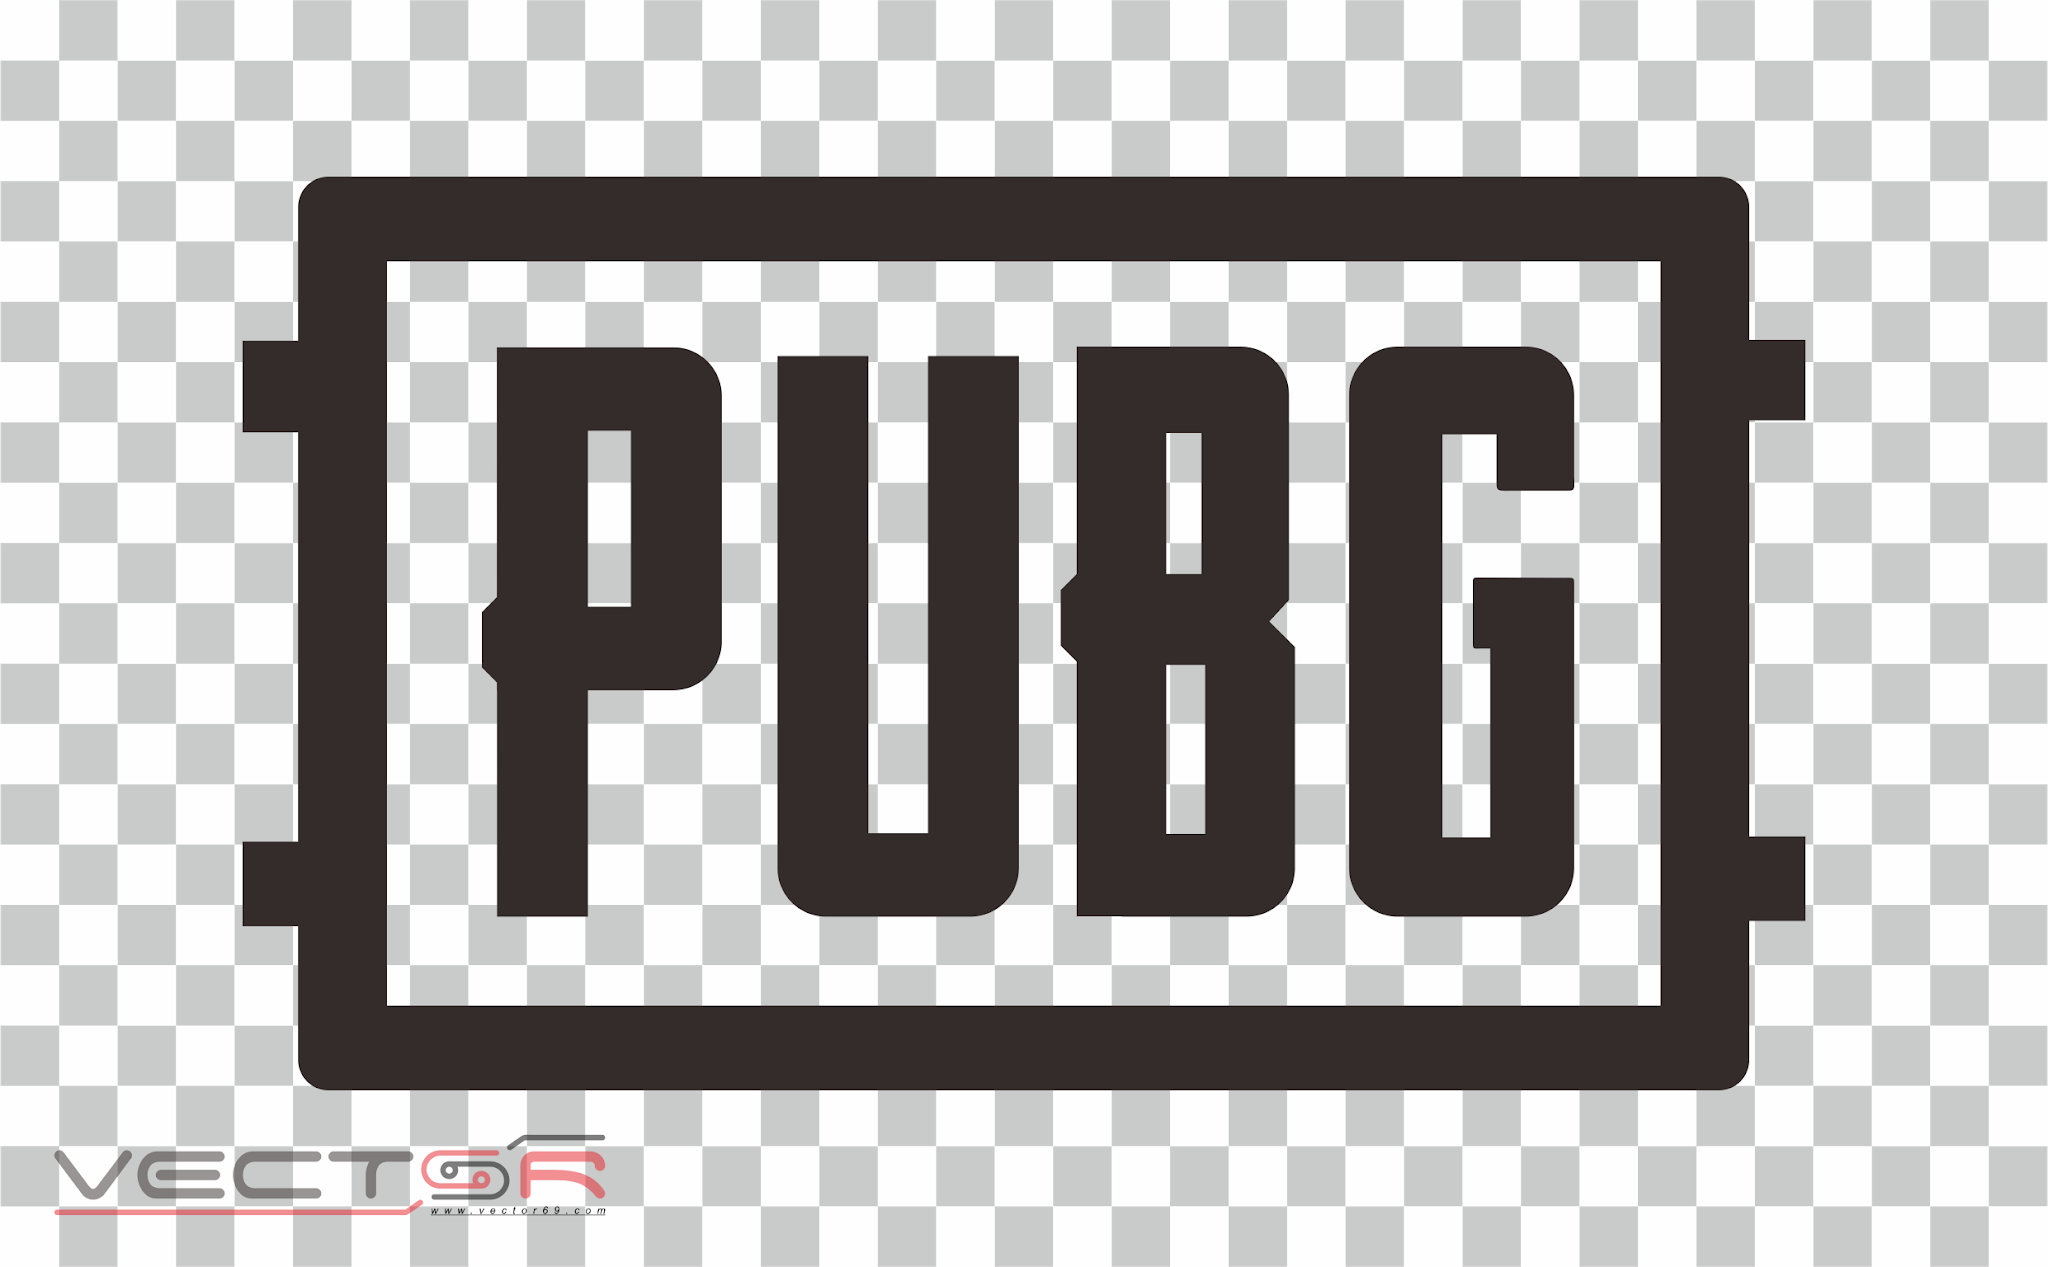 PUBG Logo - Download Vector File PNG (Portable Network Graphics)